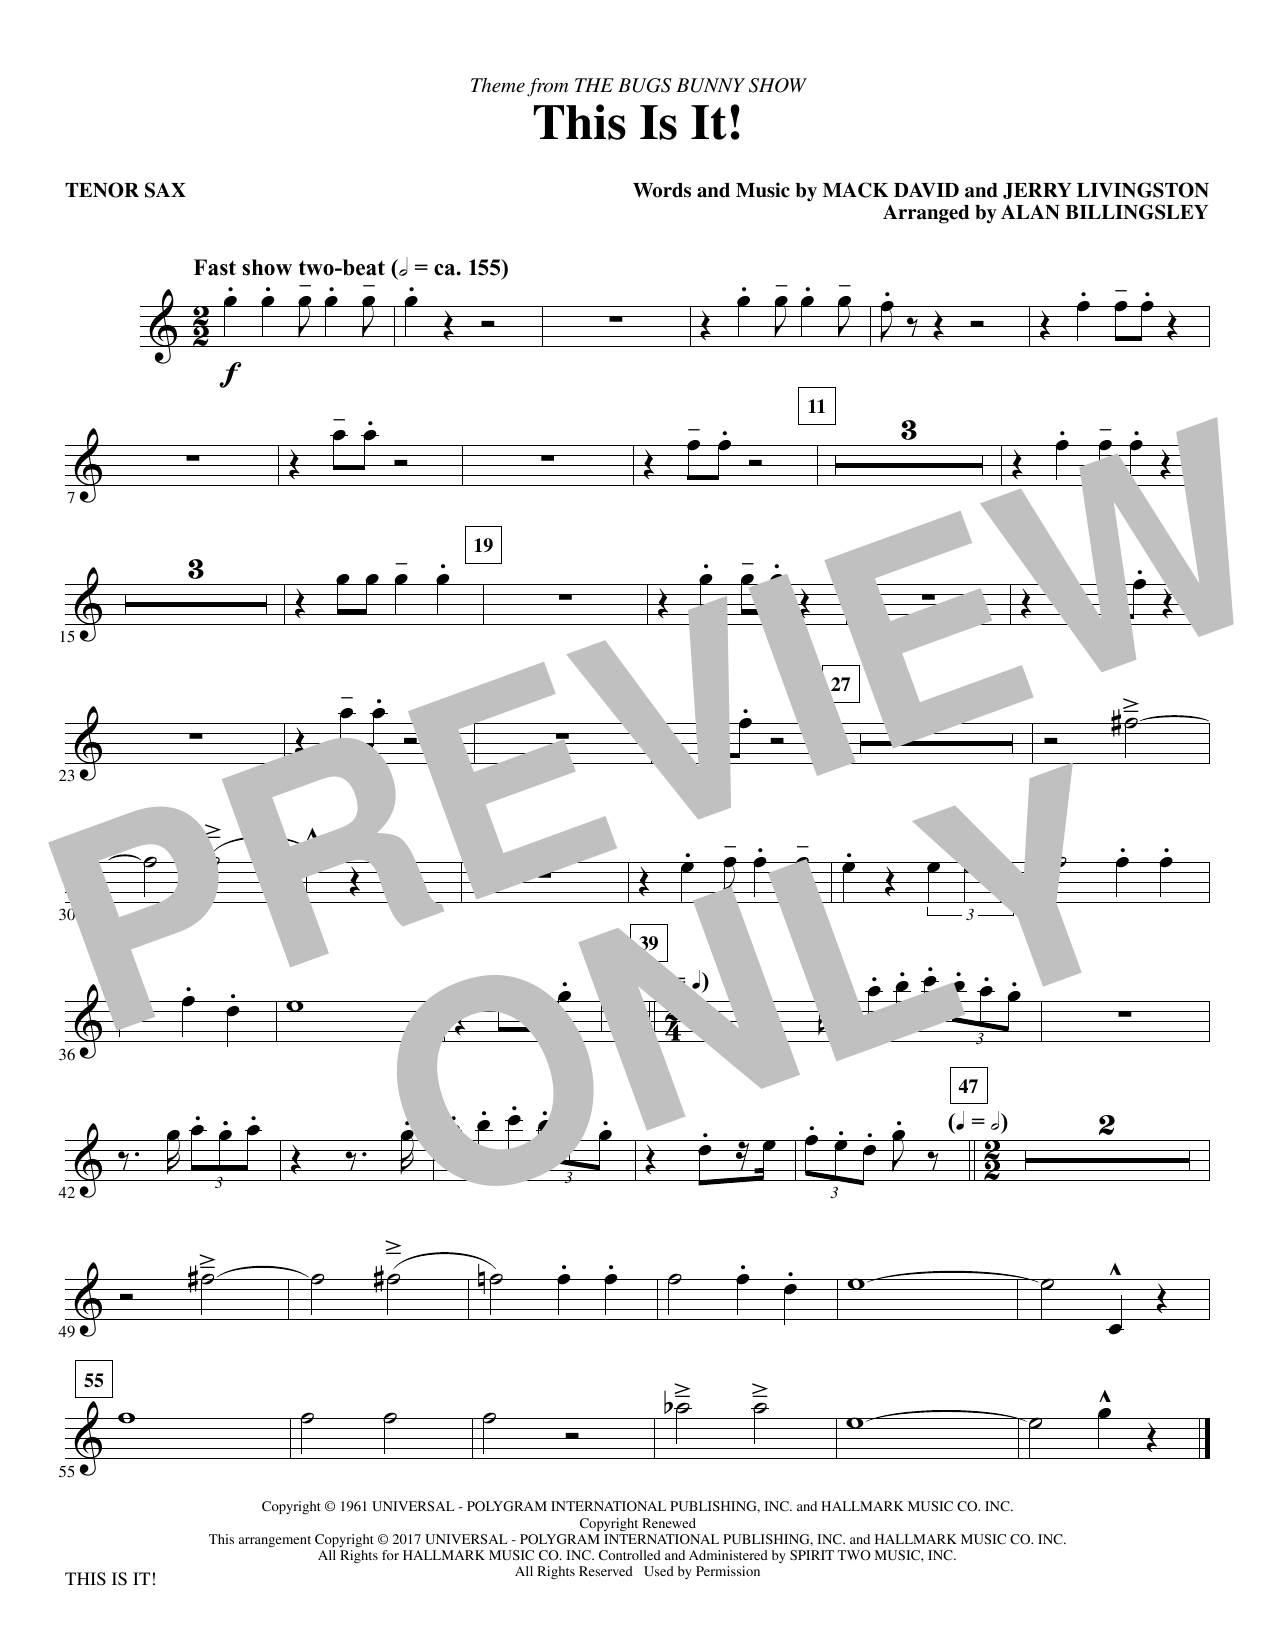 Mack David & Jerry Livingston This Is It! (arr. Alan Billingsley) - Tenor Saxophone sheet music notes and chords. Download Printable PDF.